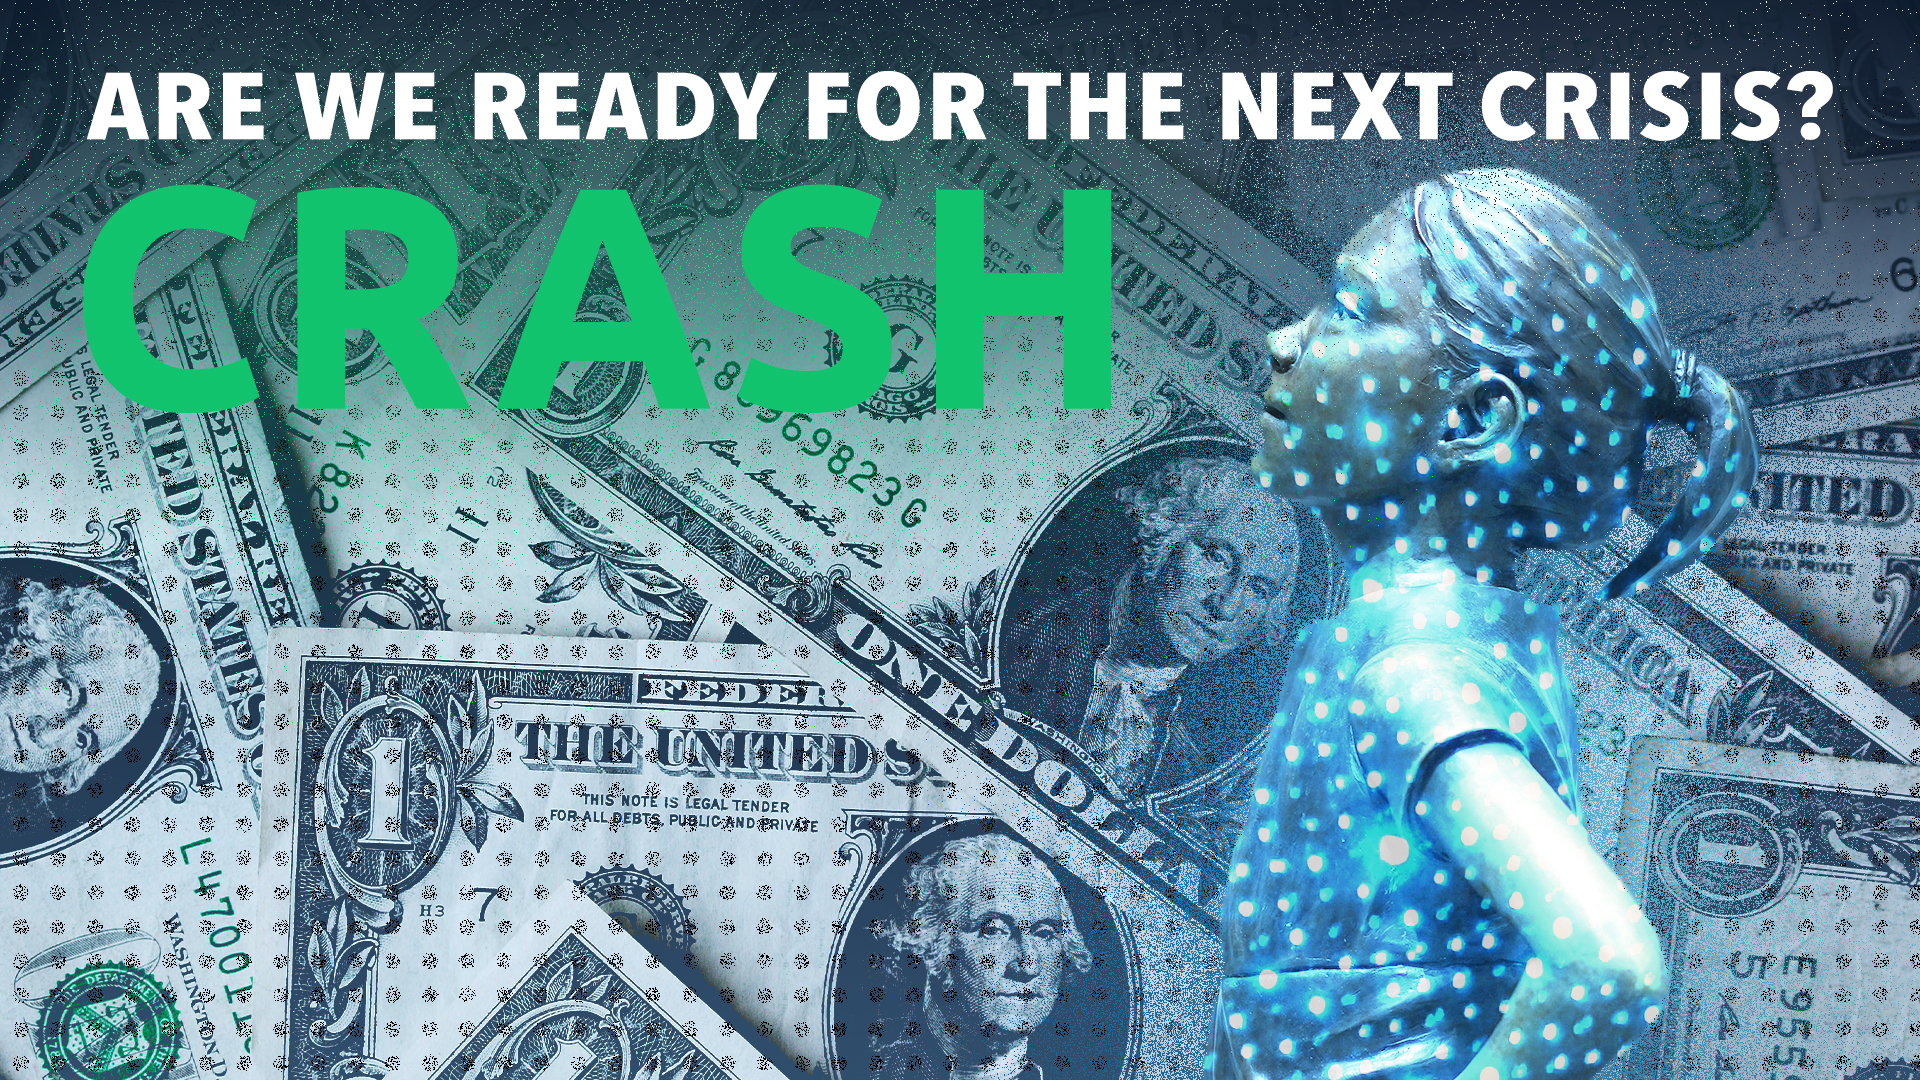 Crash: Are We Ready for the Next Crisis?